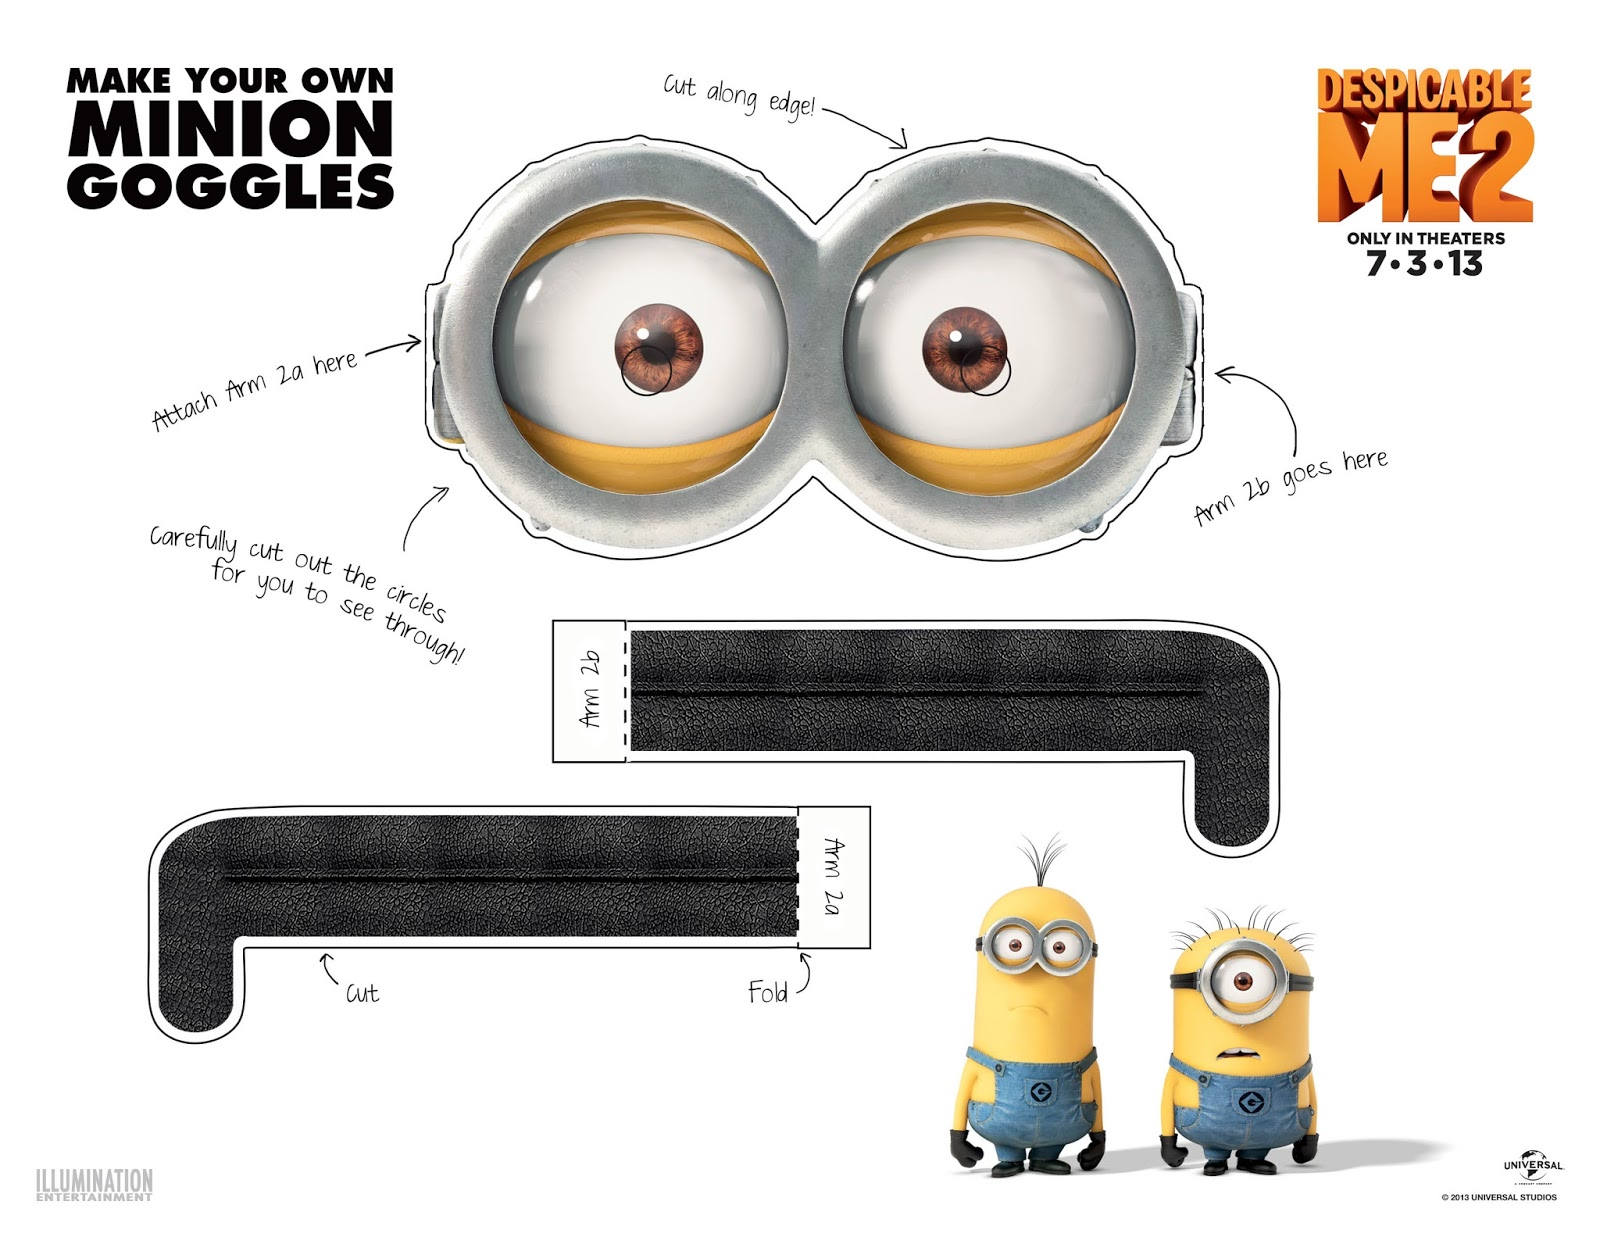 Challenger image with regard to minion goggle printable